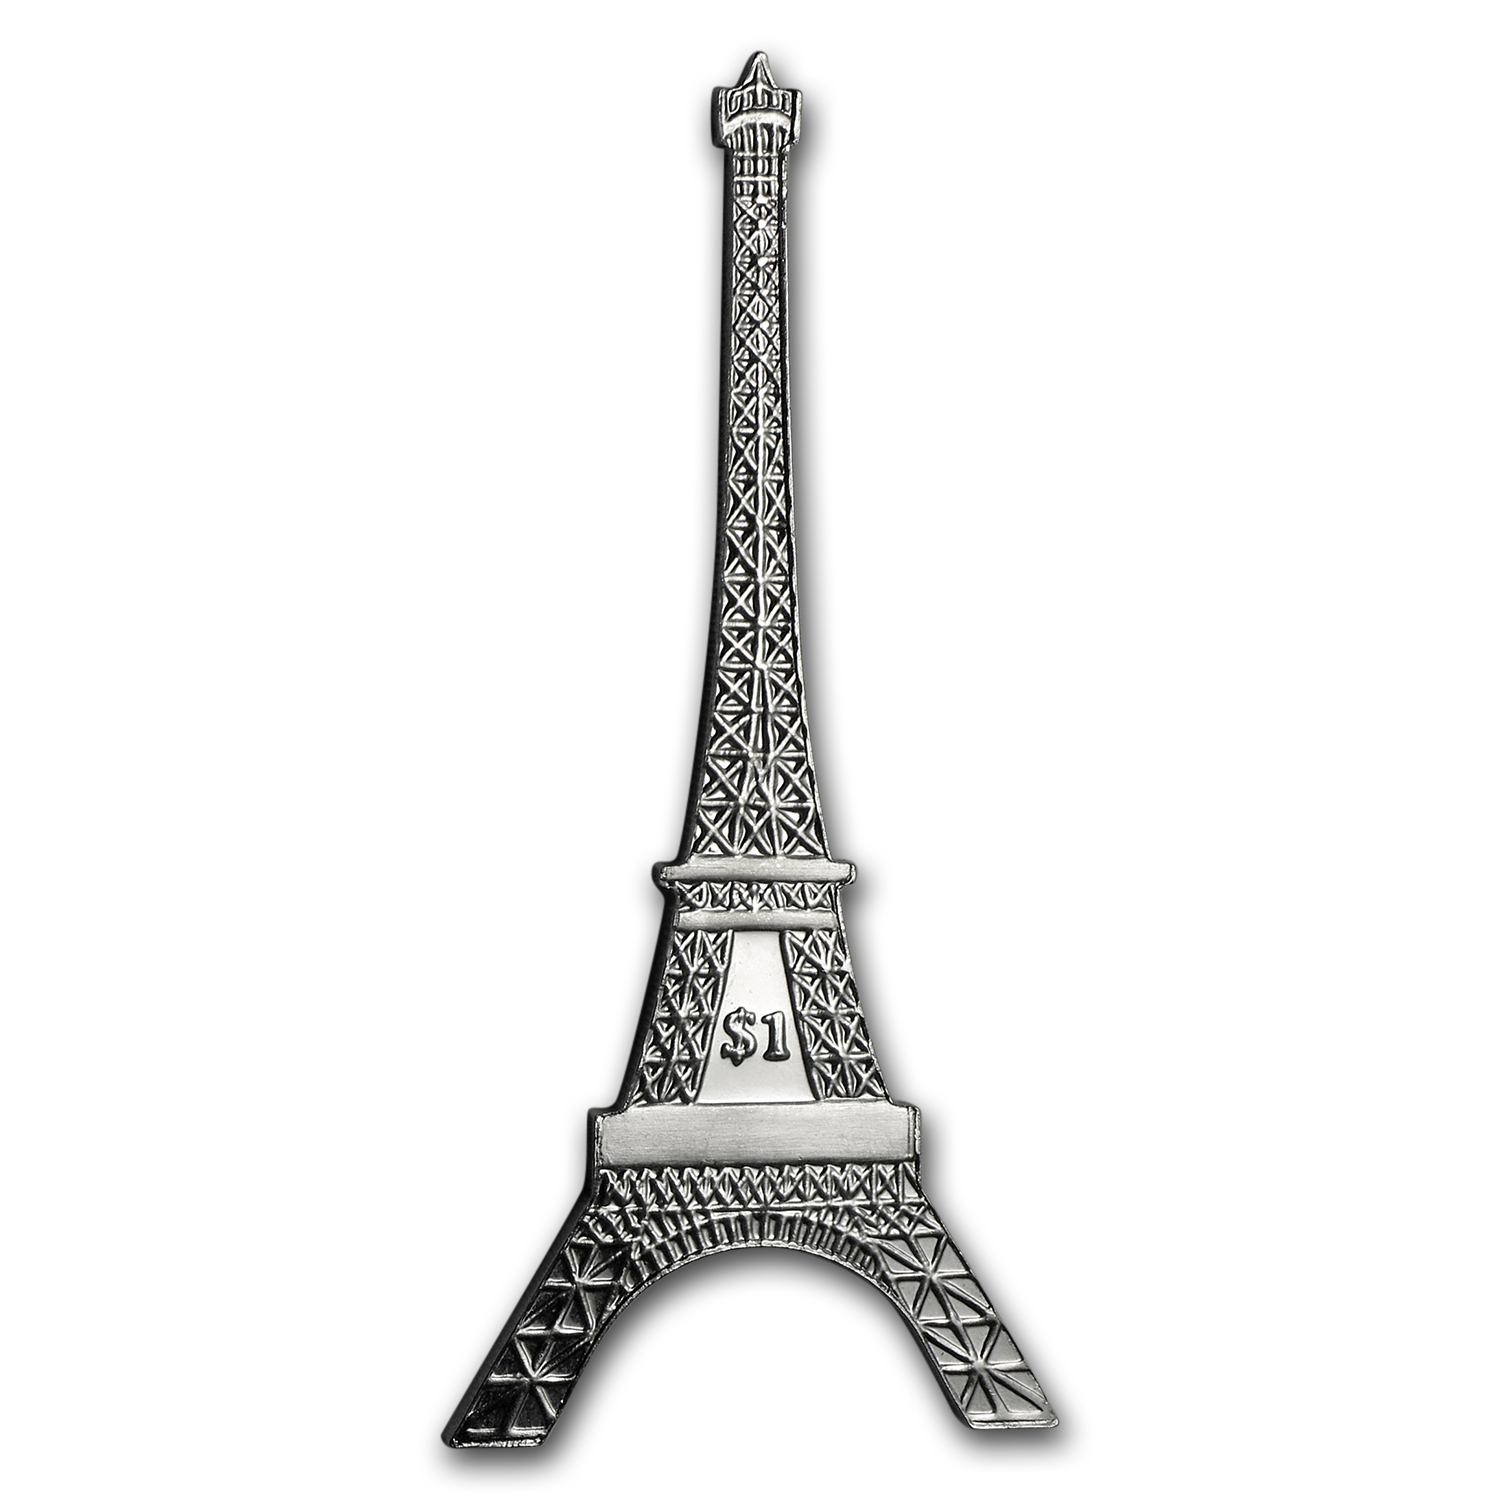 2014 BVI Cupro-Nickel $1 125th Anniv Eiffel Tower